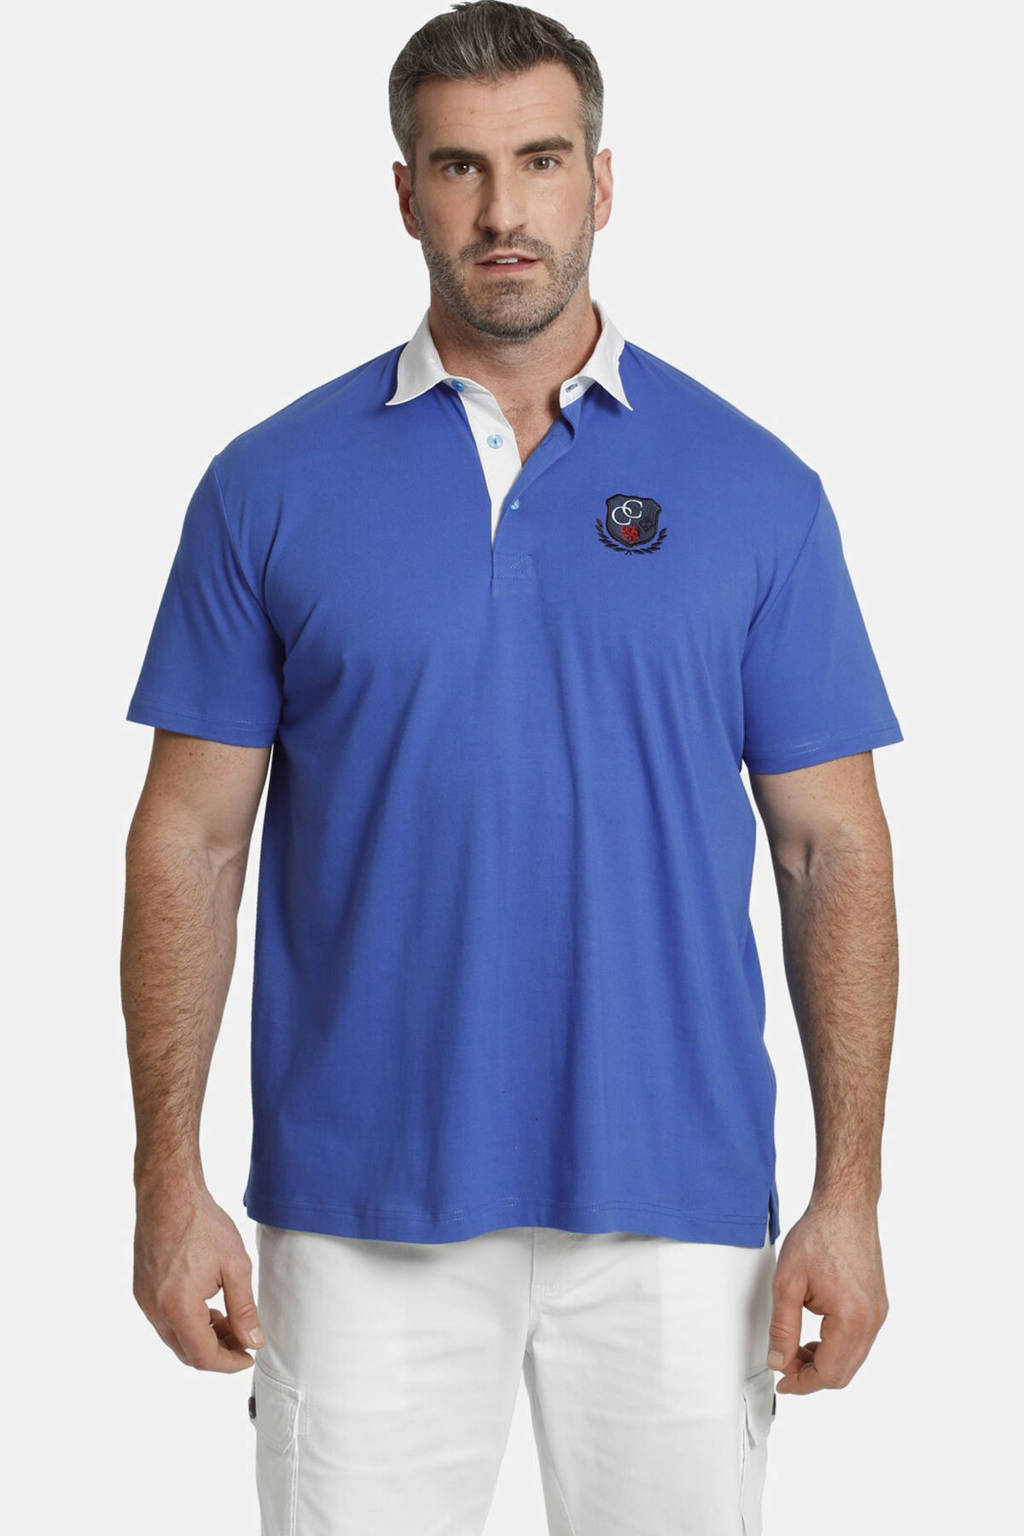 Charles Colby loose fit  polo EARL MAYWARD Plus Size met contrastbies blauw, Blauw